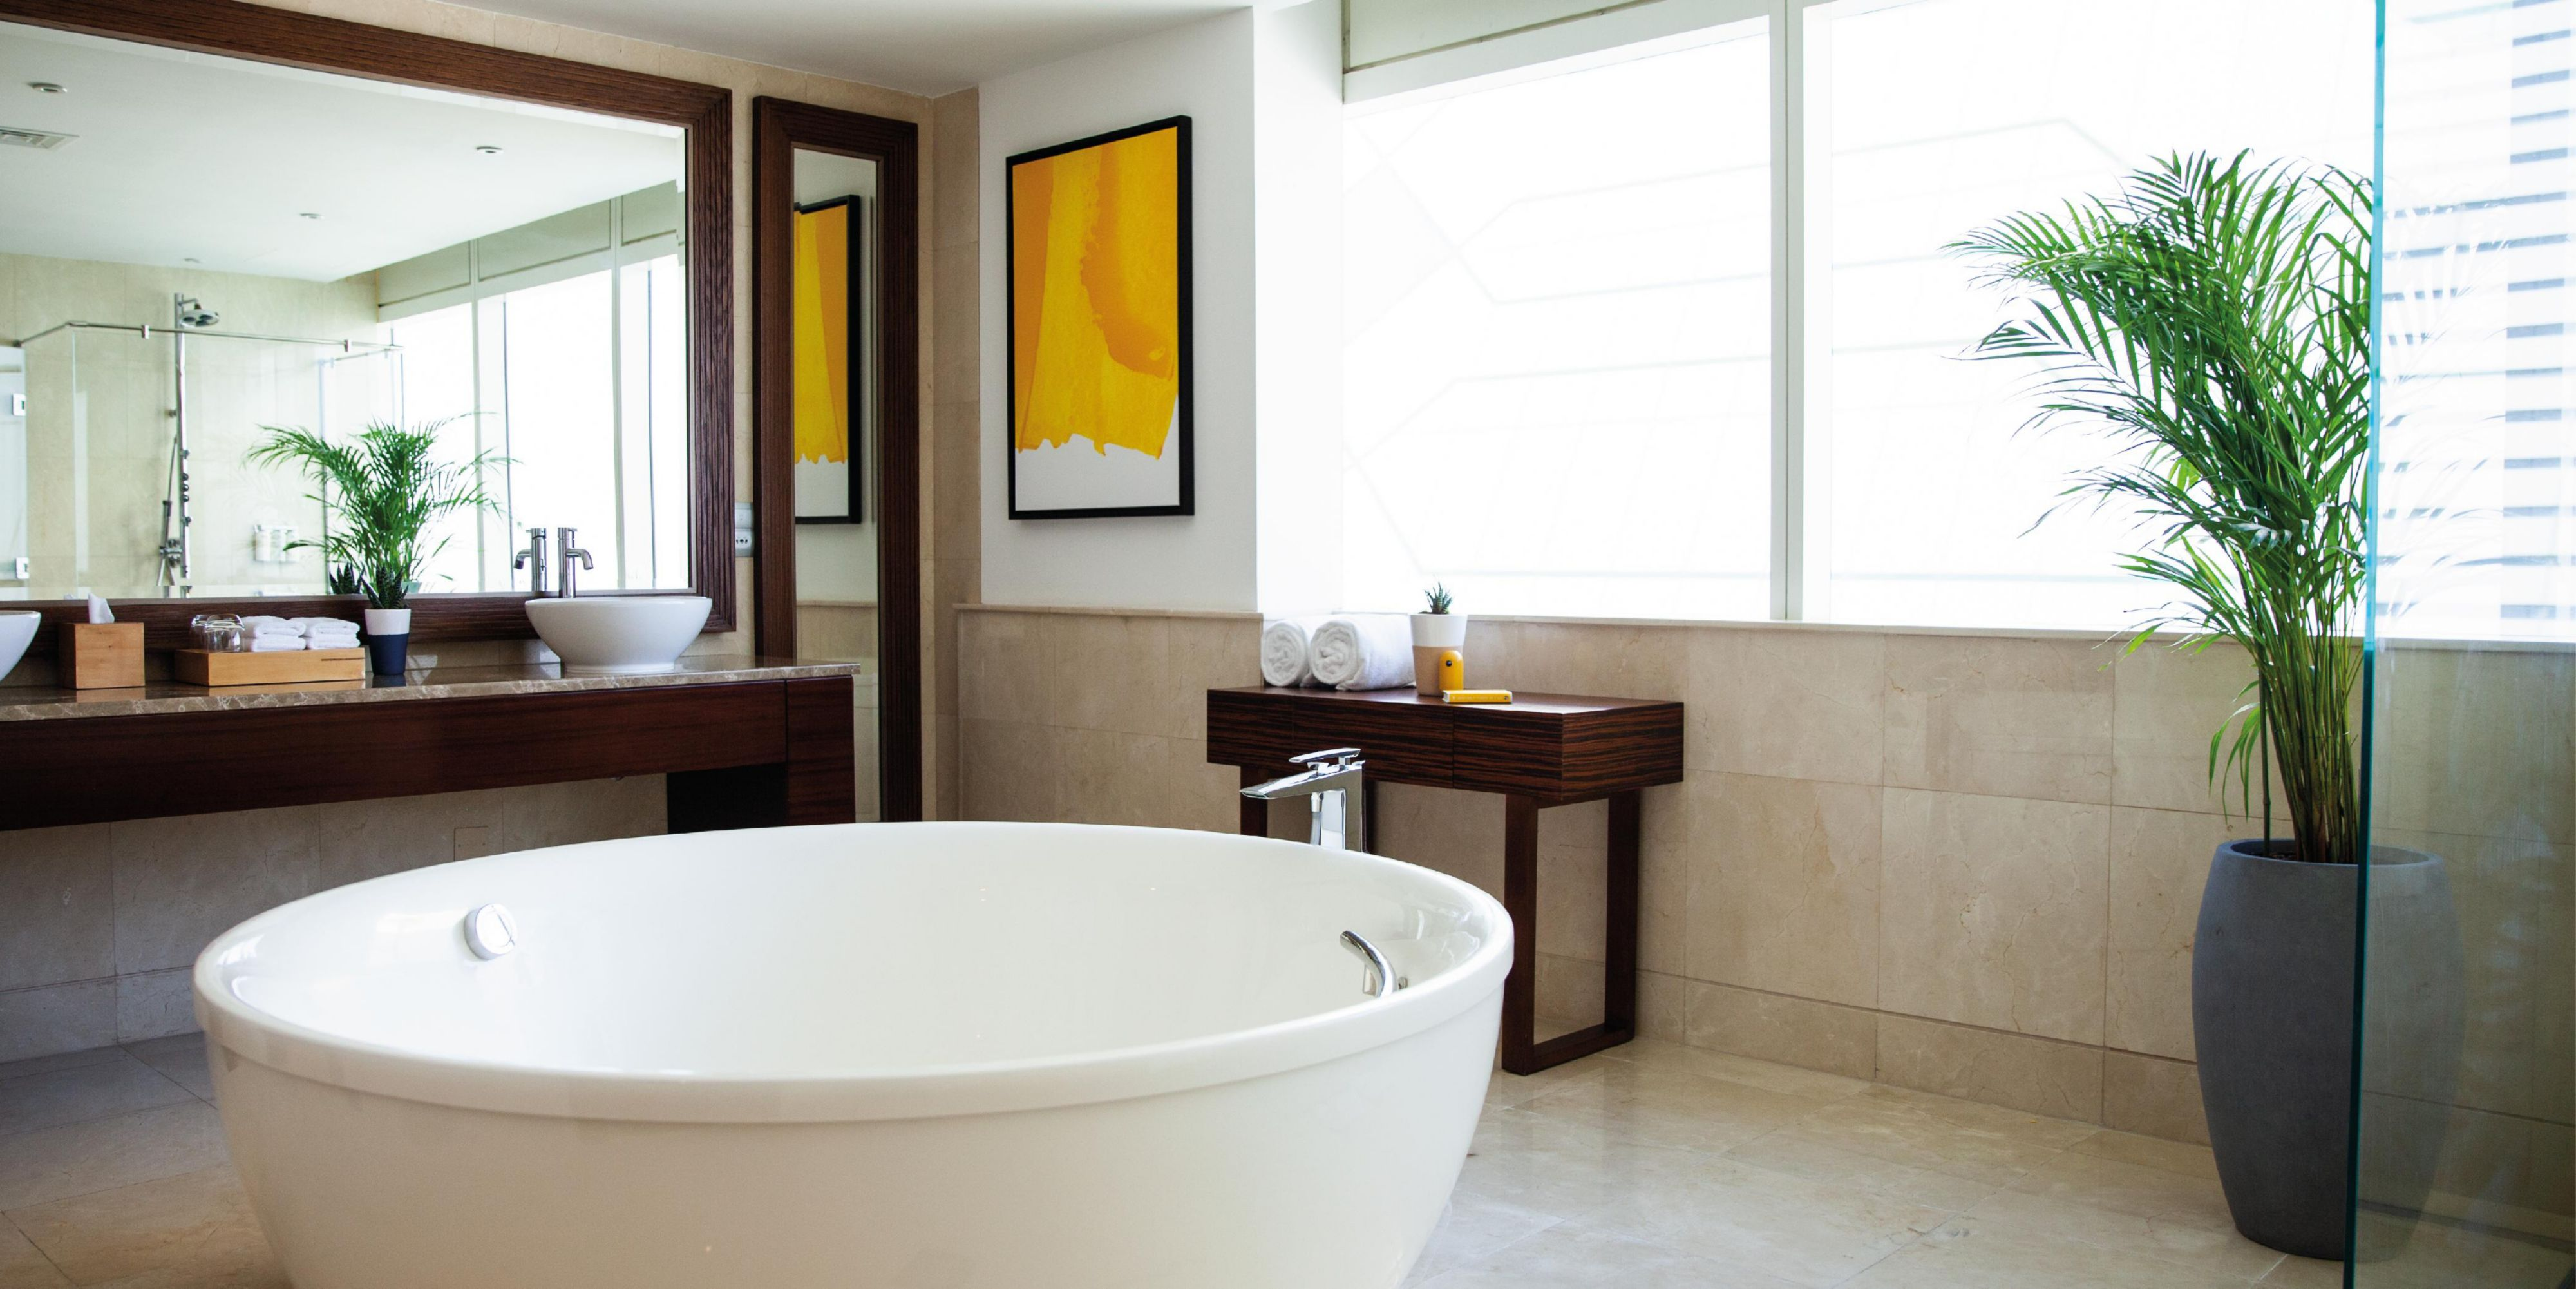 Jacuzzi bathroom, Panoramic Royal Suite, views ofSheikh Zayed Rd